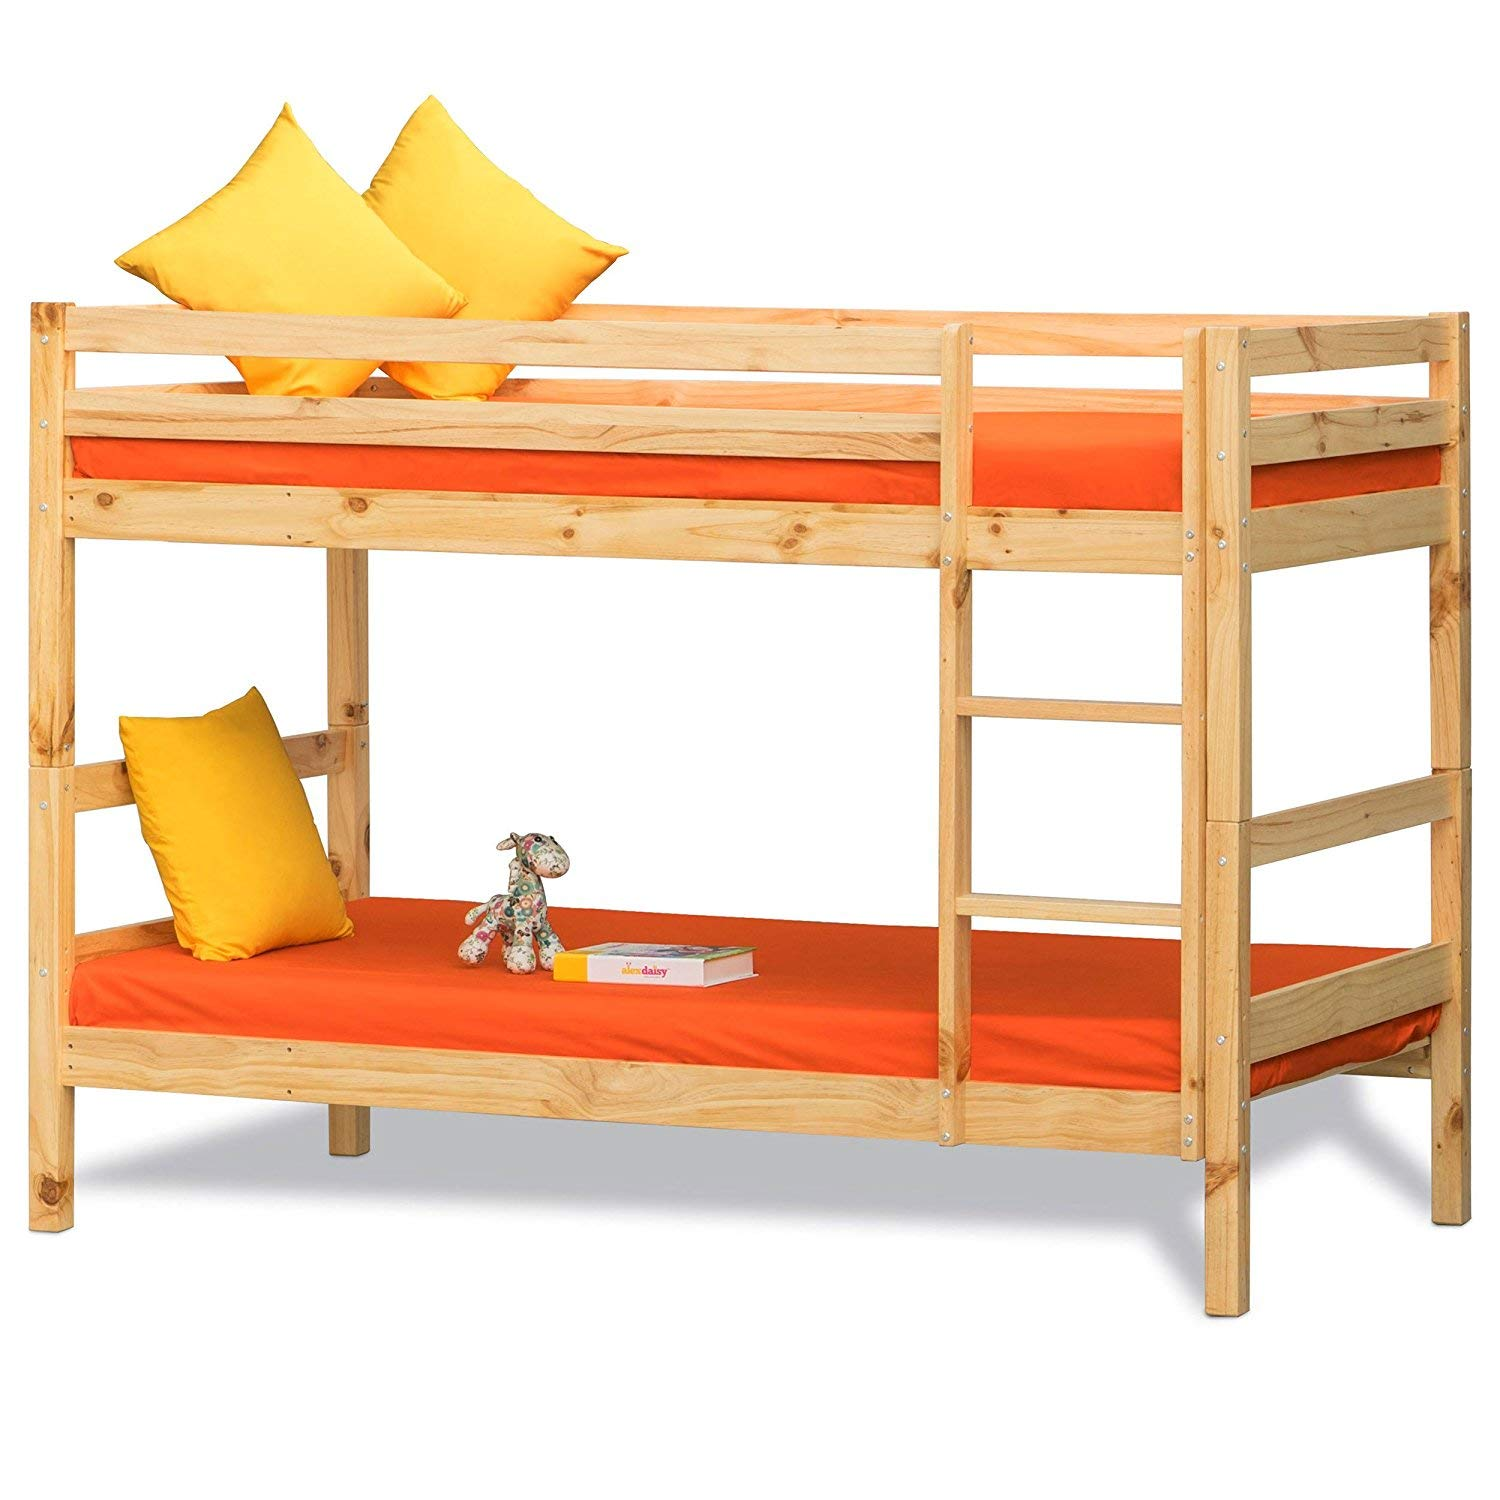 Ledaur bunk bed for girls Double Size Bunk Bed for Kids